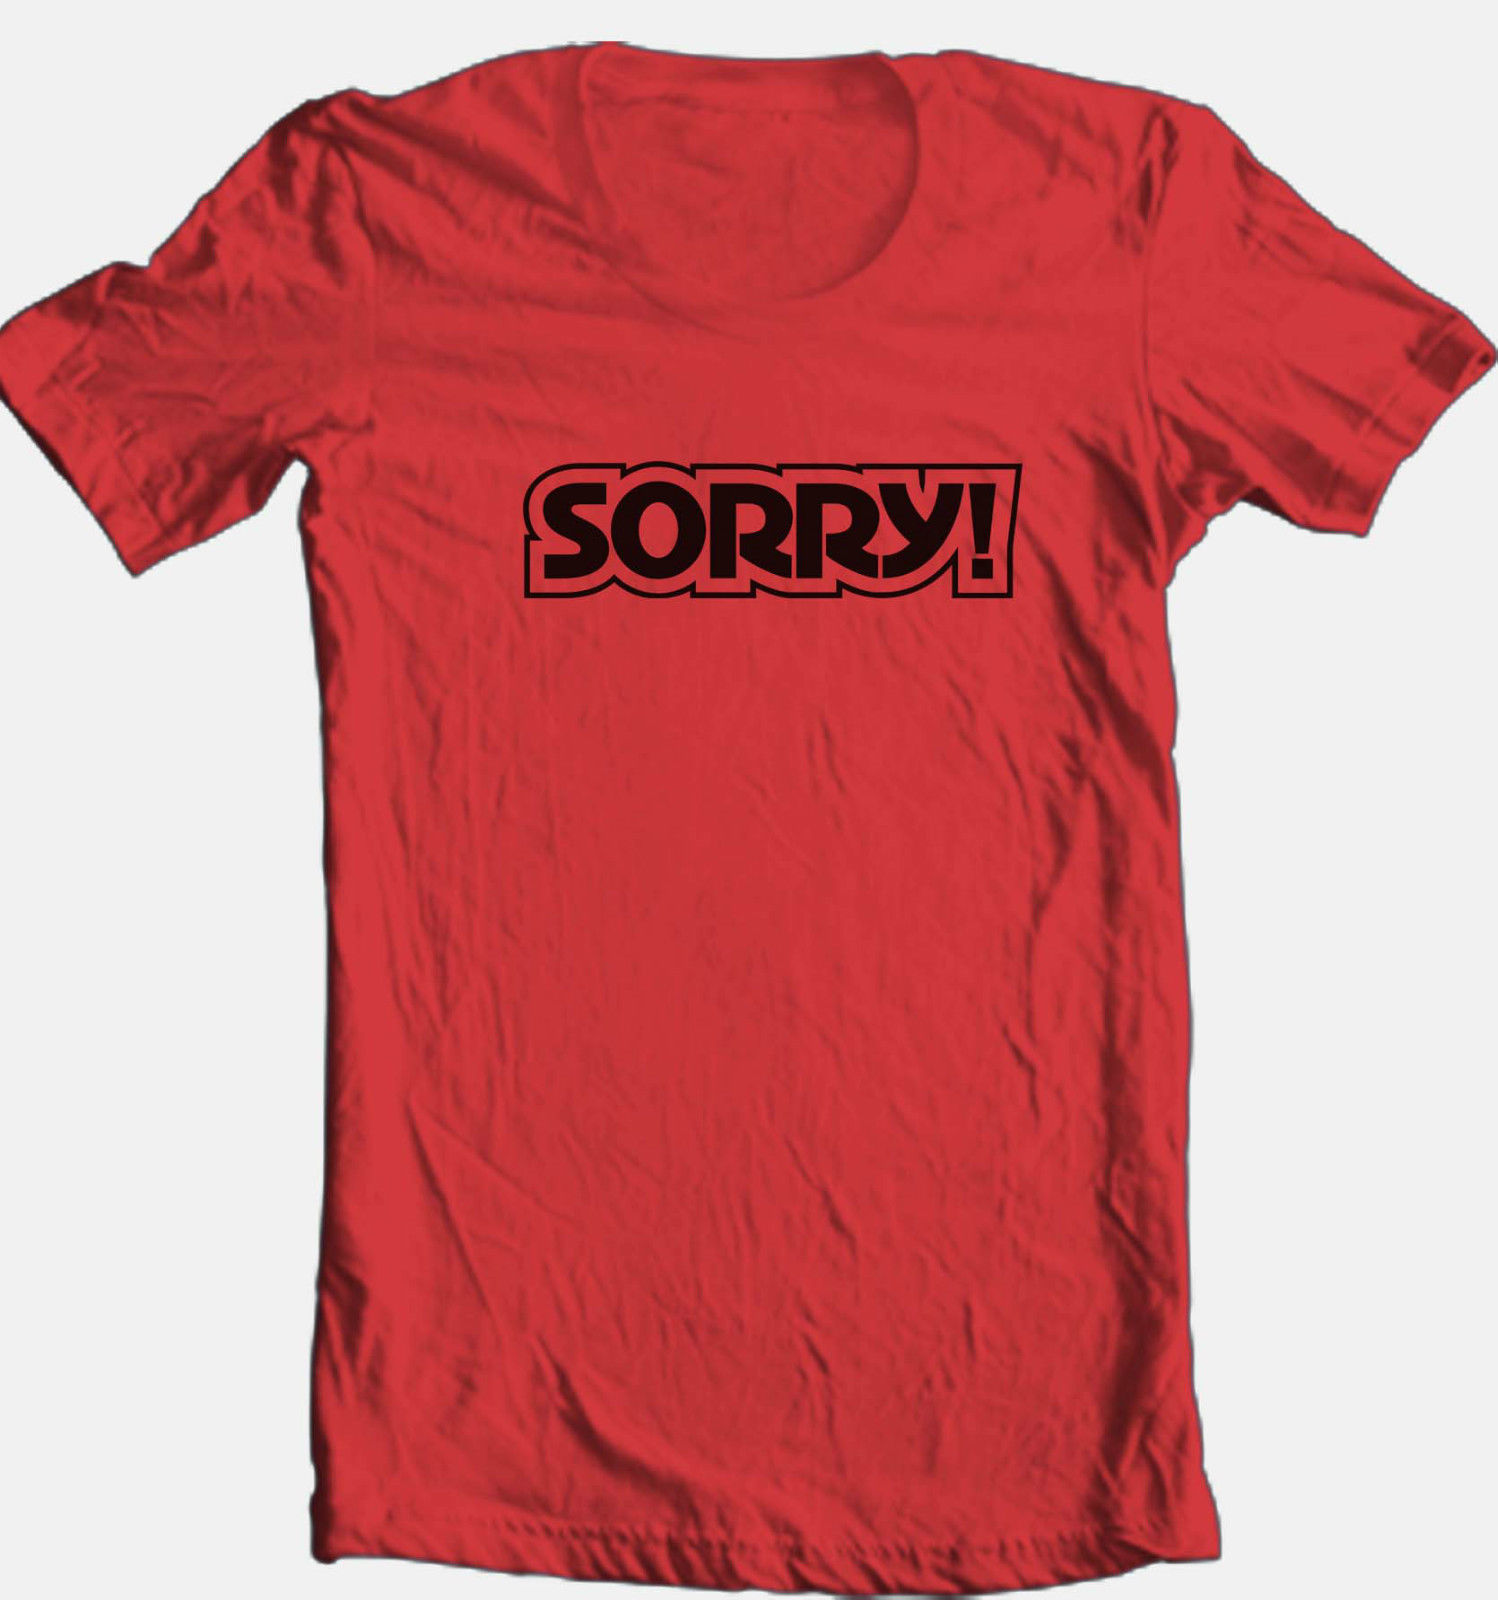 Sorry! T shirt retro 70's toys  80's board game funny 100% cotton graphic tee